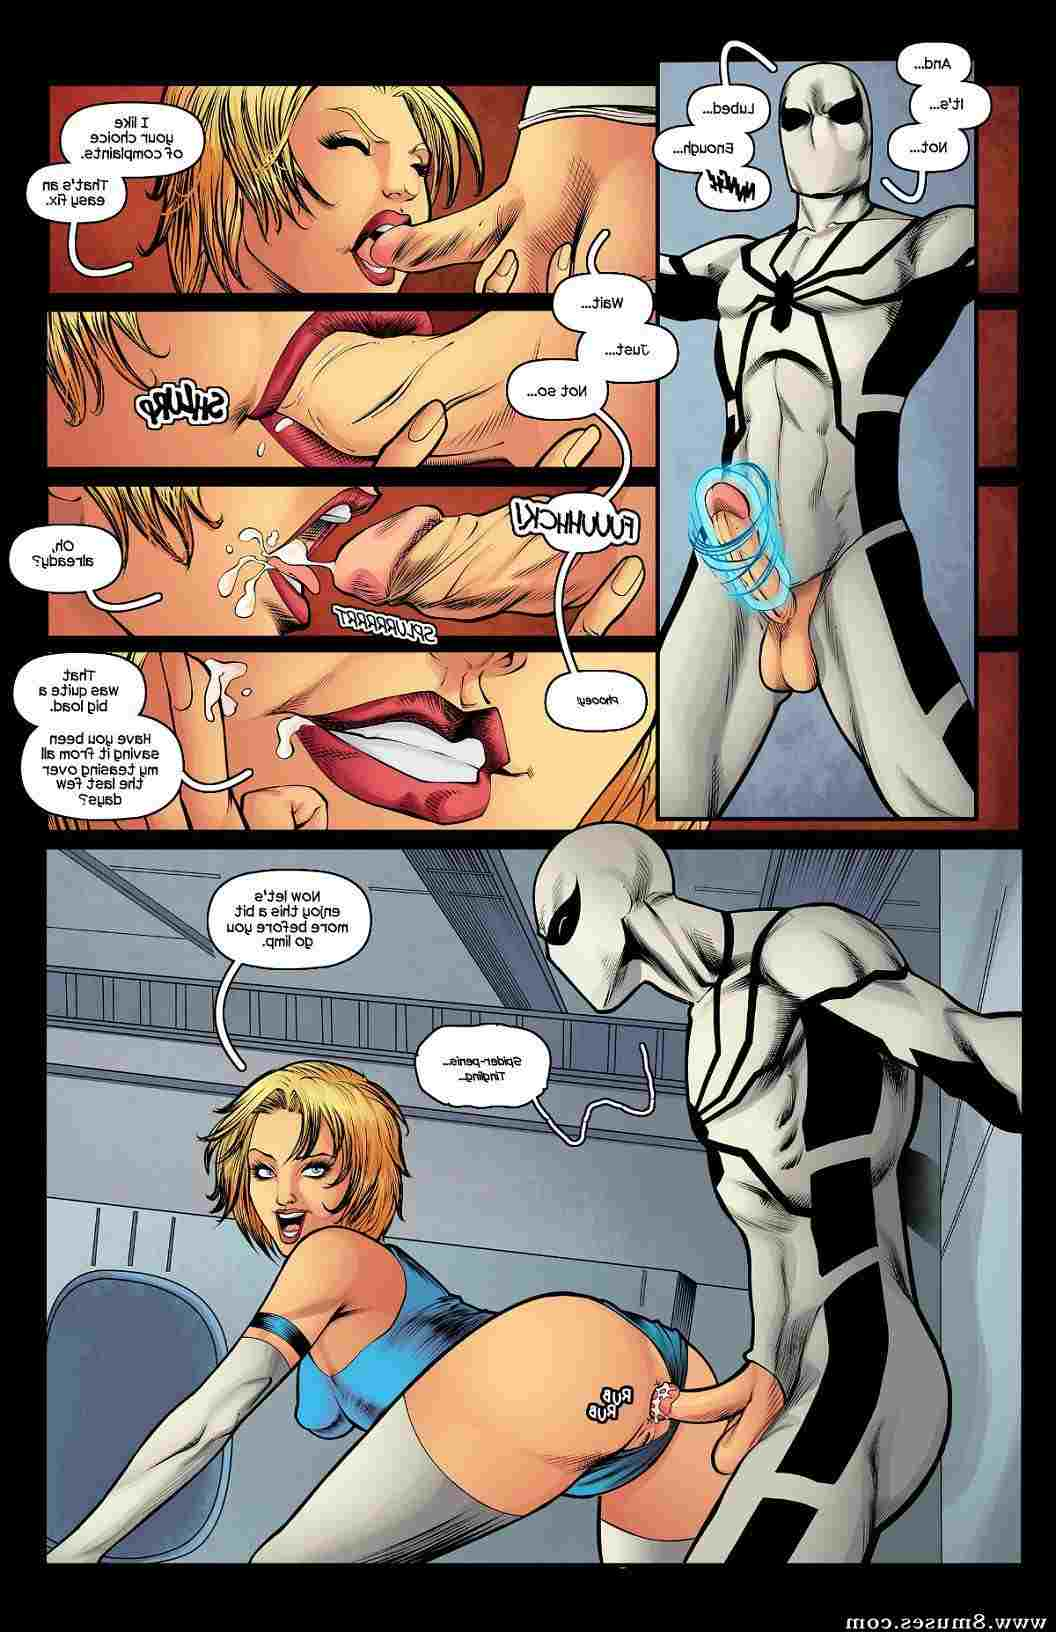 Tracy-Scops-Comics/Future-Foundation Future_Foundation__8muses_-_Sex_and_Porn_Comics_8.jpg